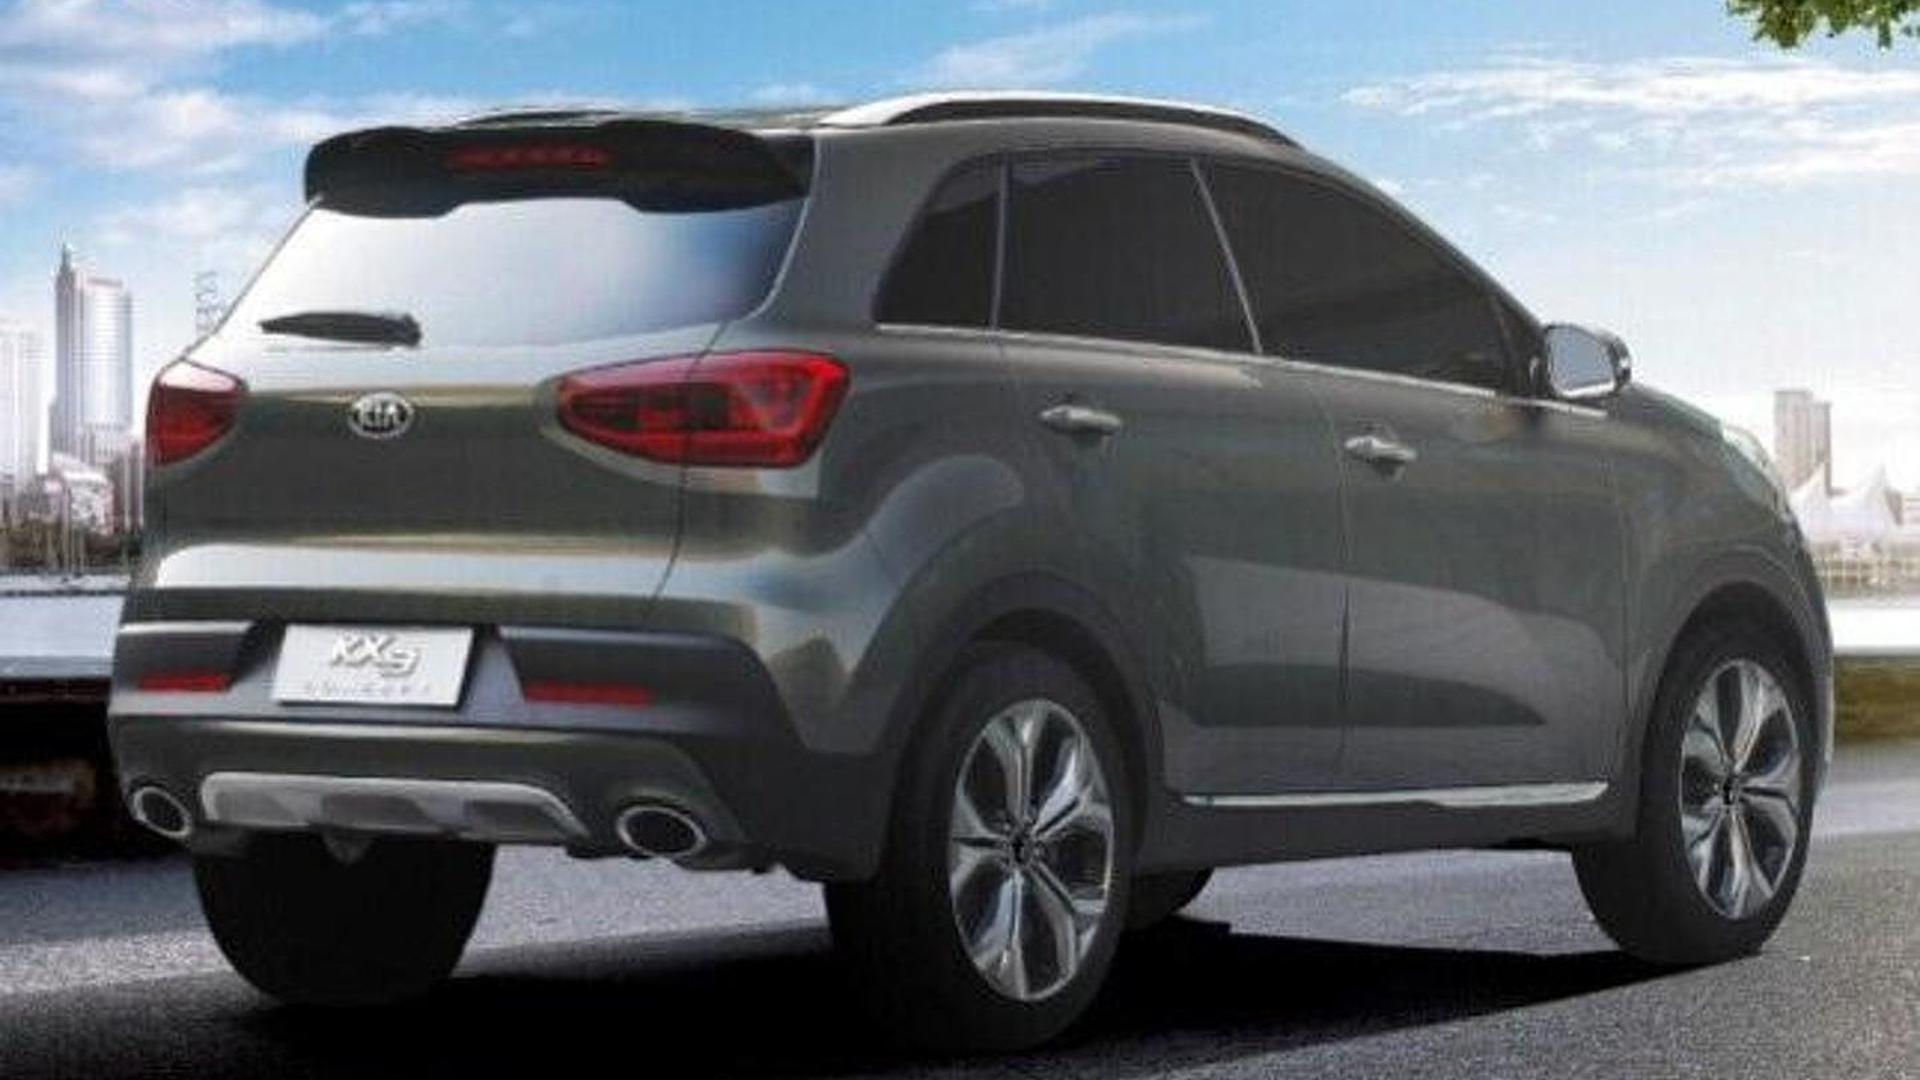 Kia KX3 concept leaked to debut in Guangzhou